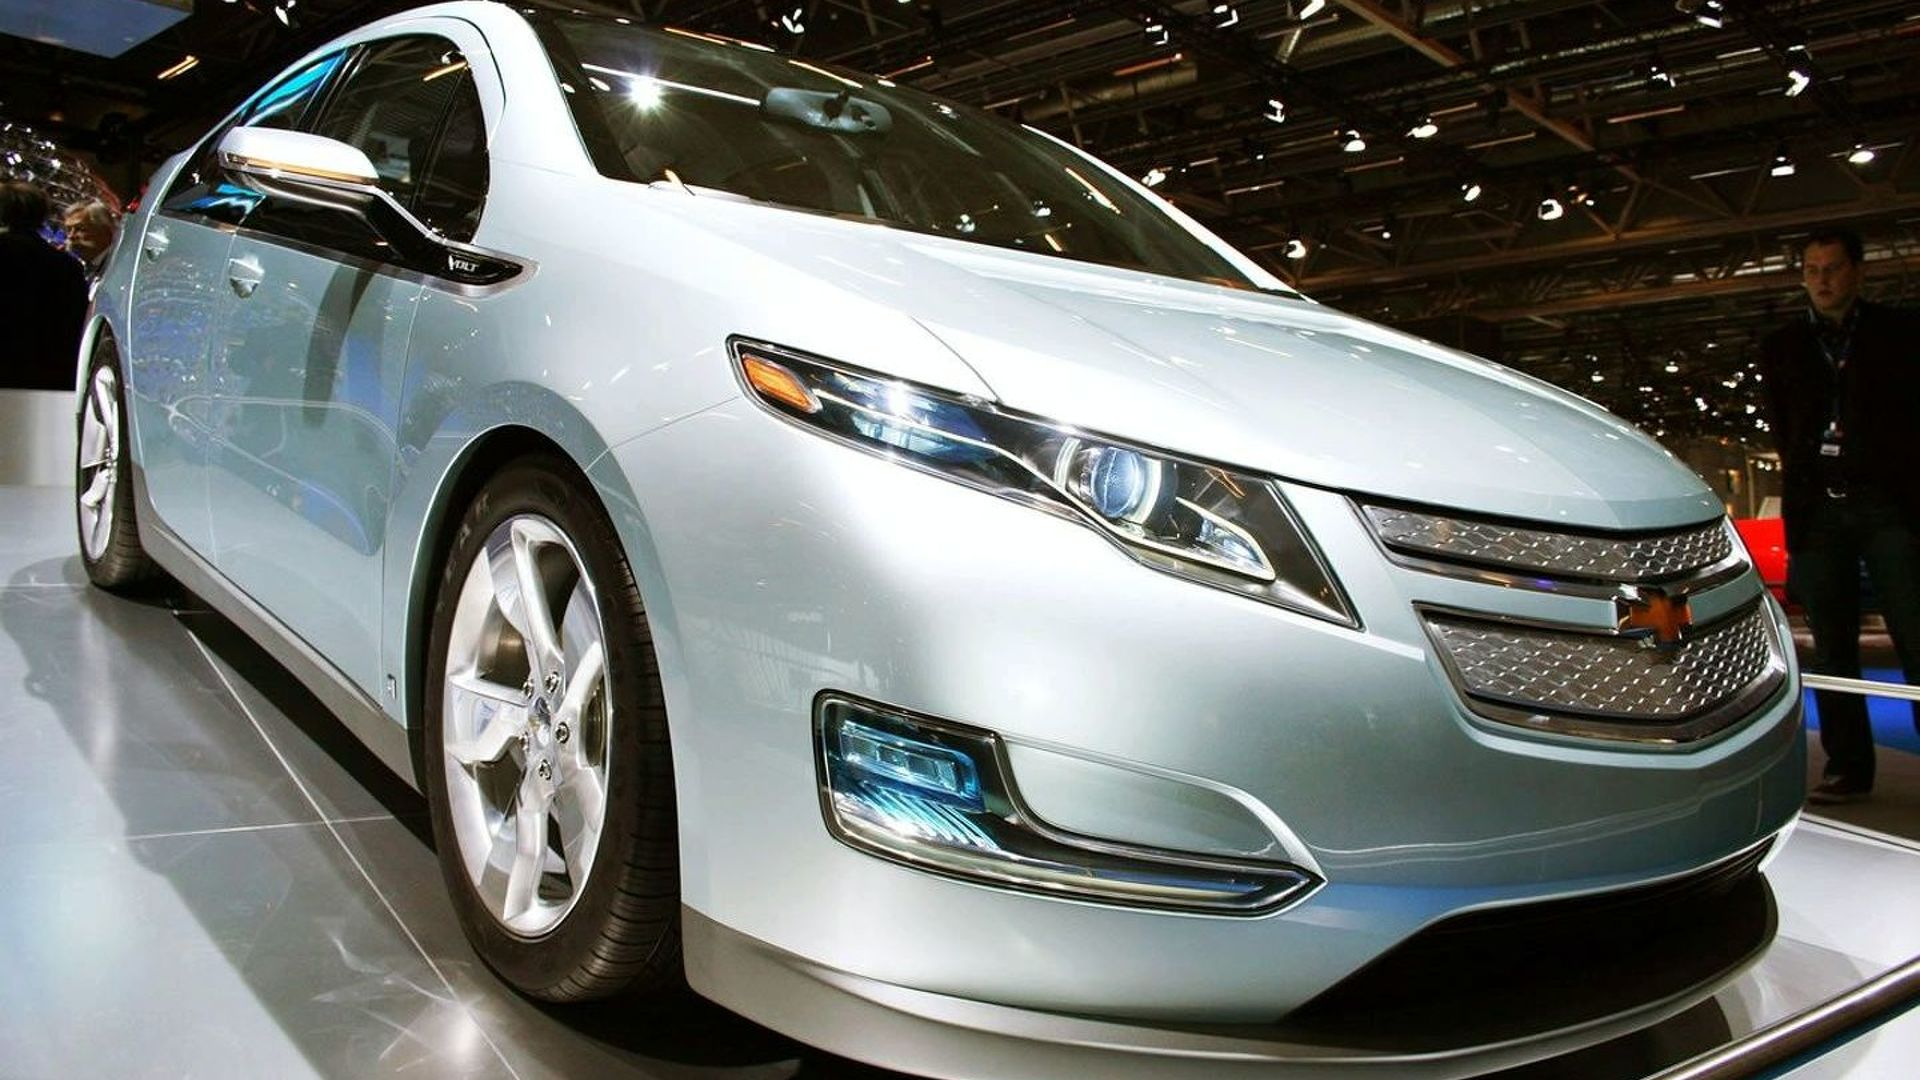 Wagoner Heading to Bailout Hearing in Chevy Volt Prototype